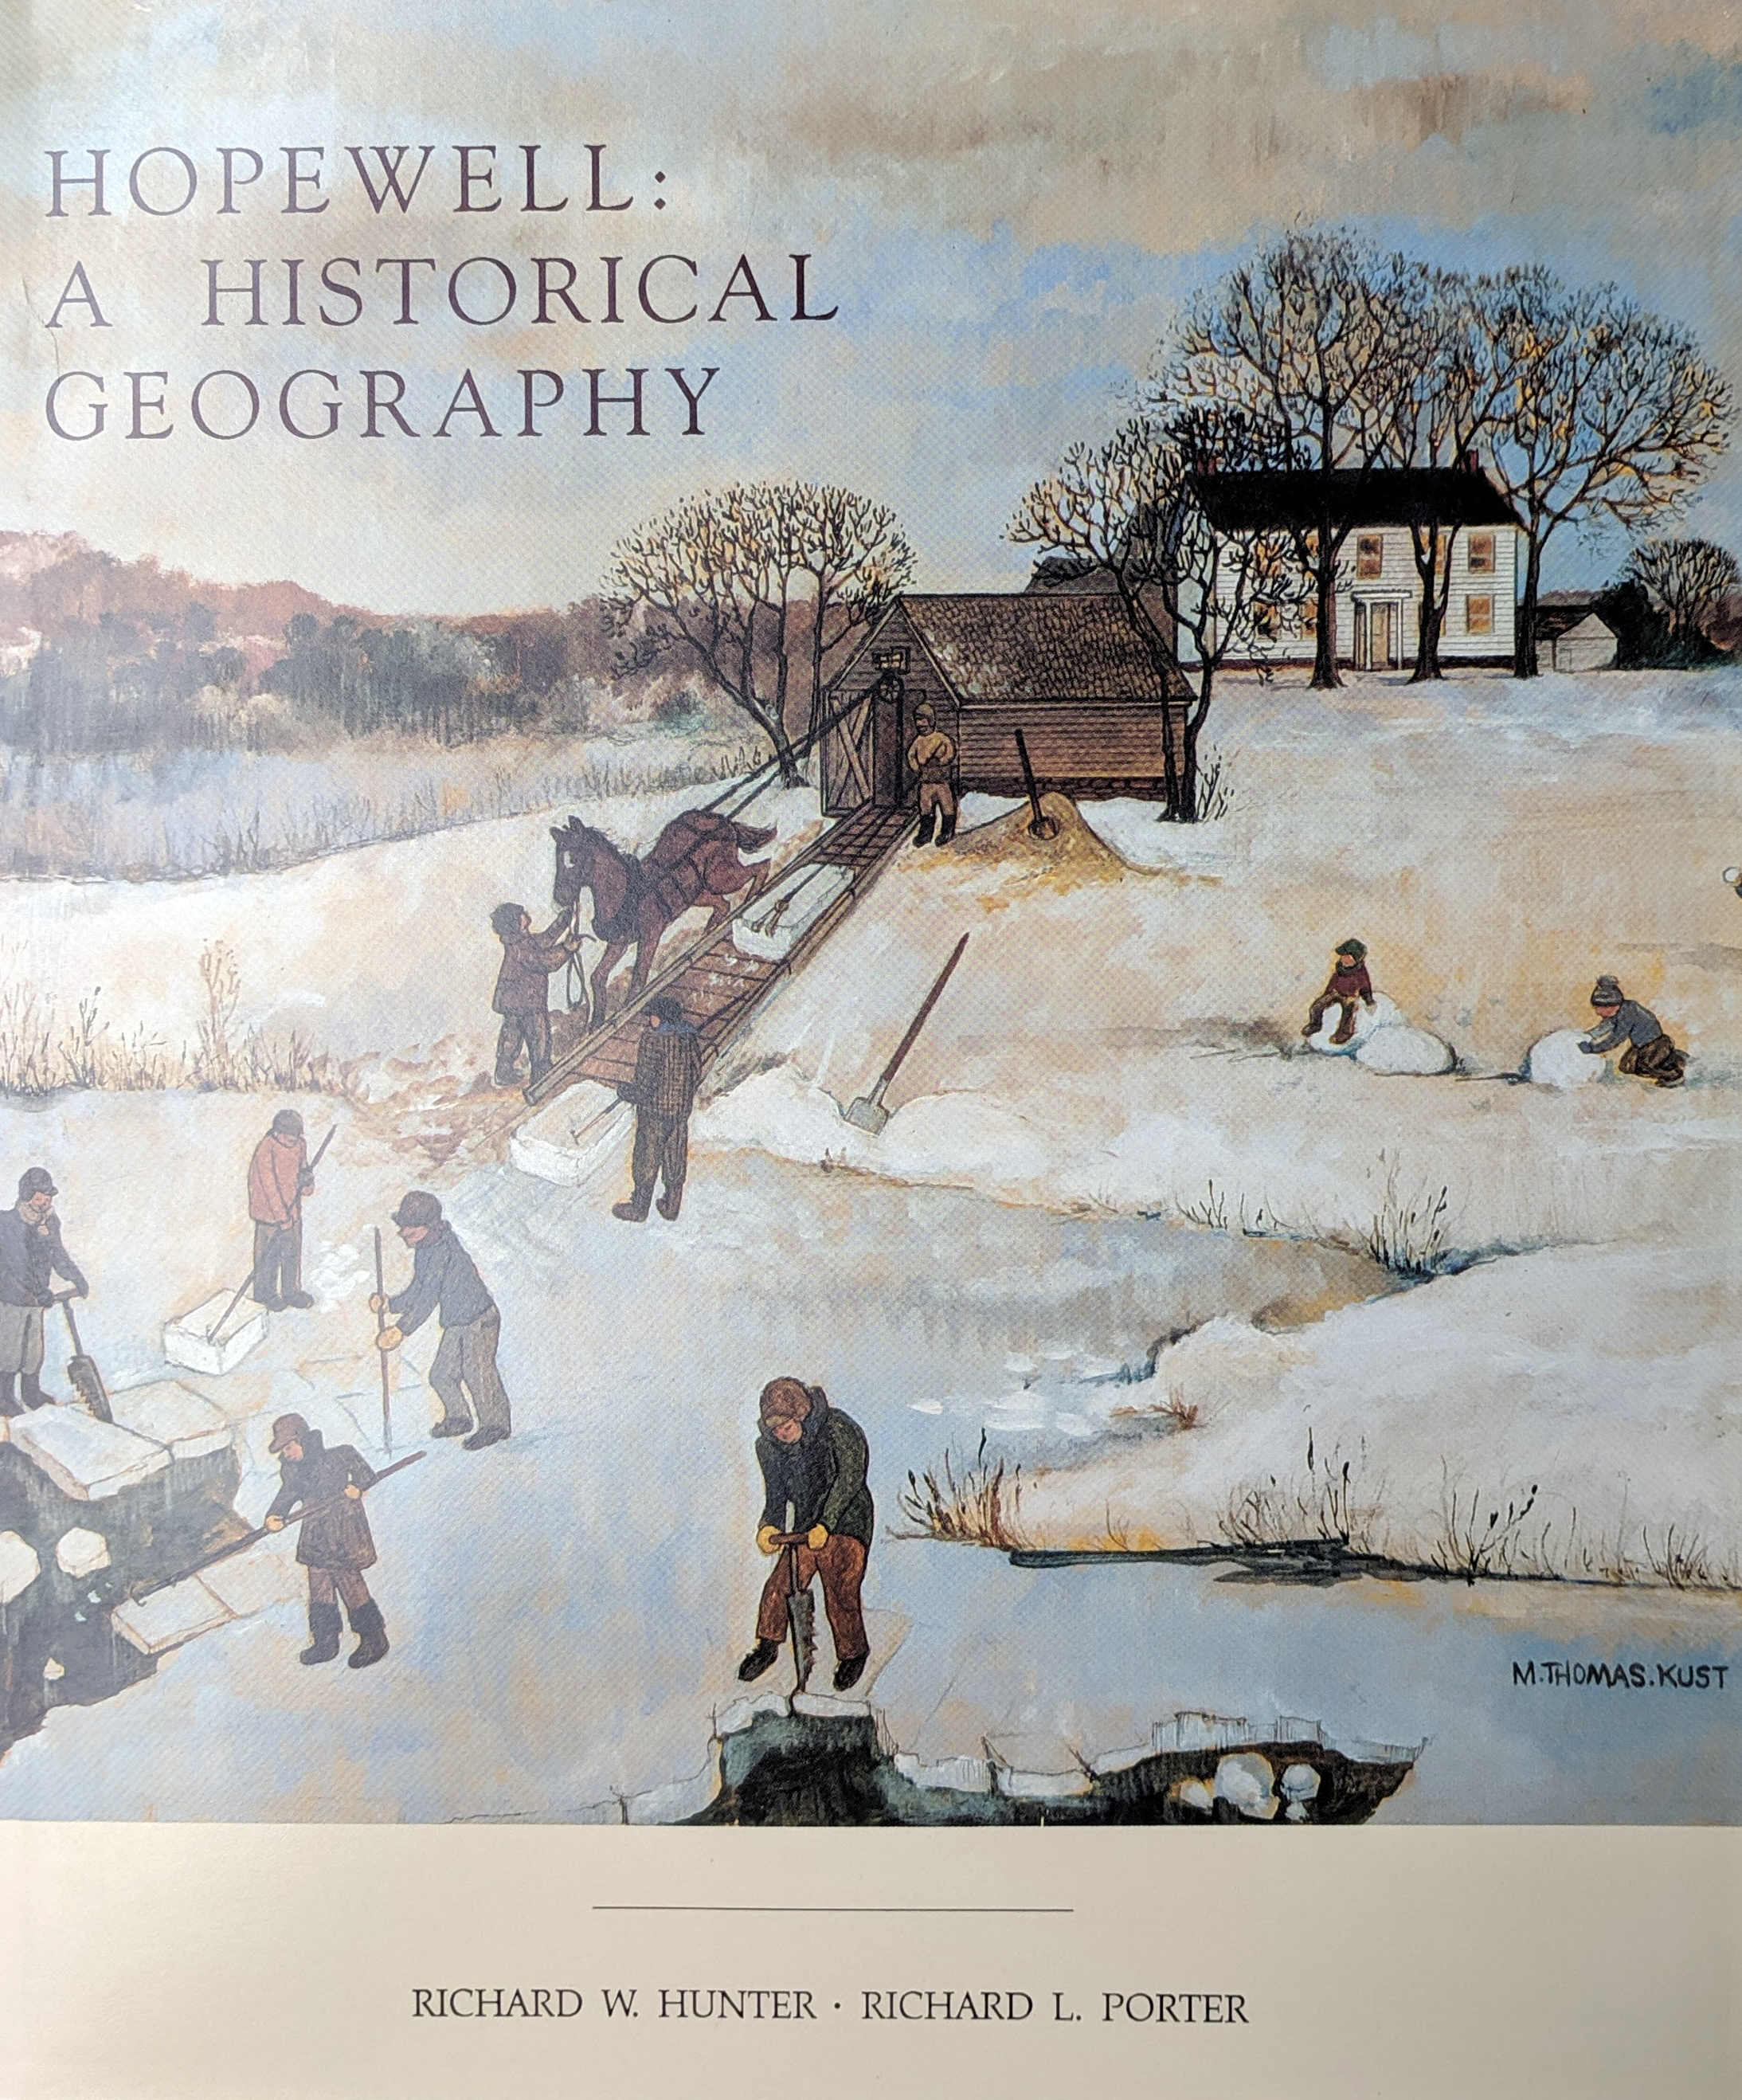 Hopewell: A Historical Geography   by Richard Hunter and Richard Porter  $30